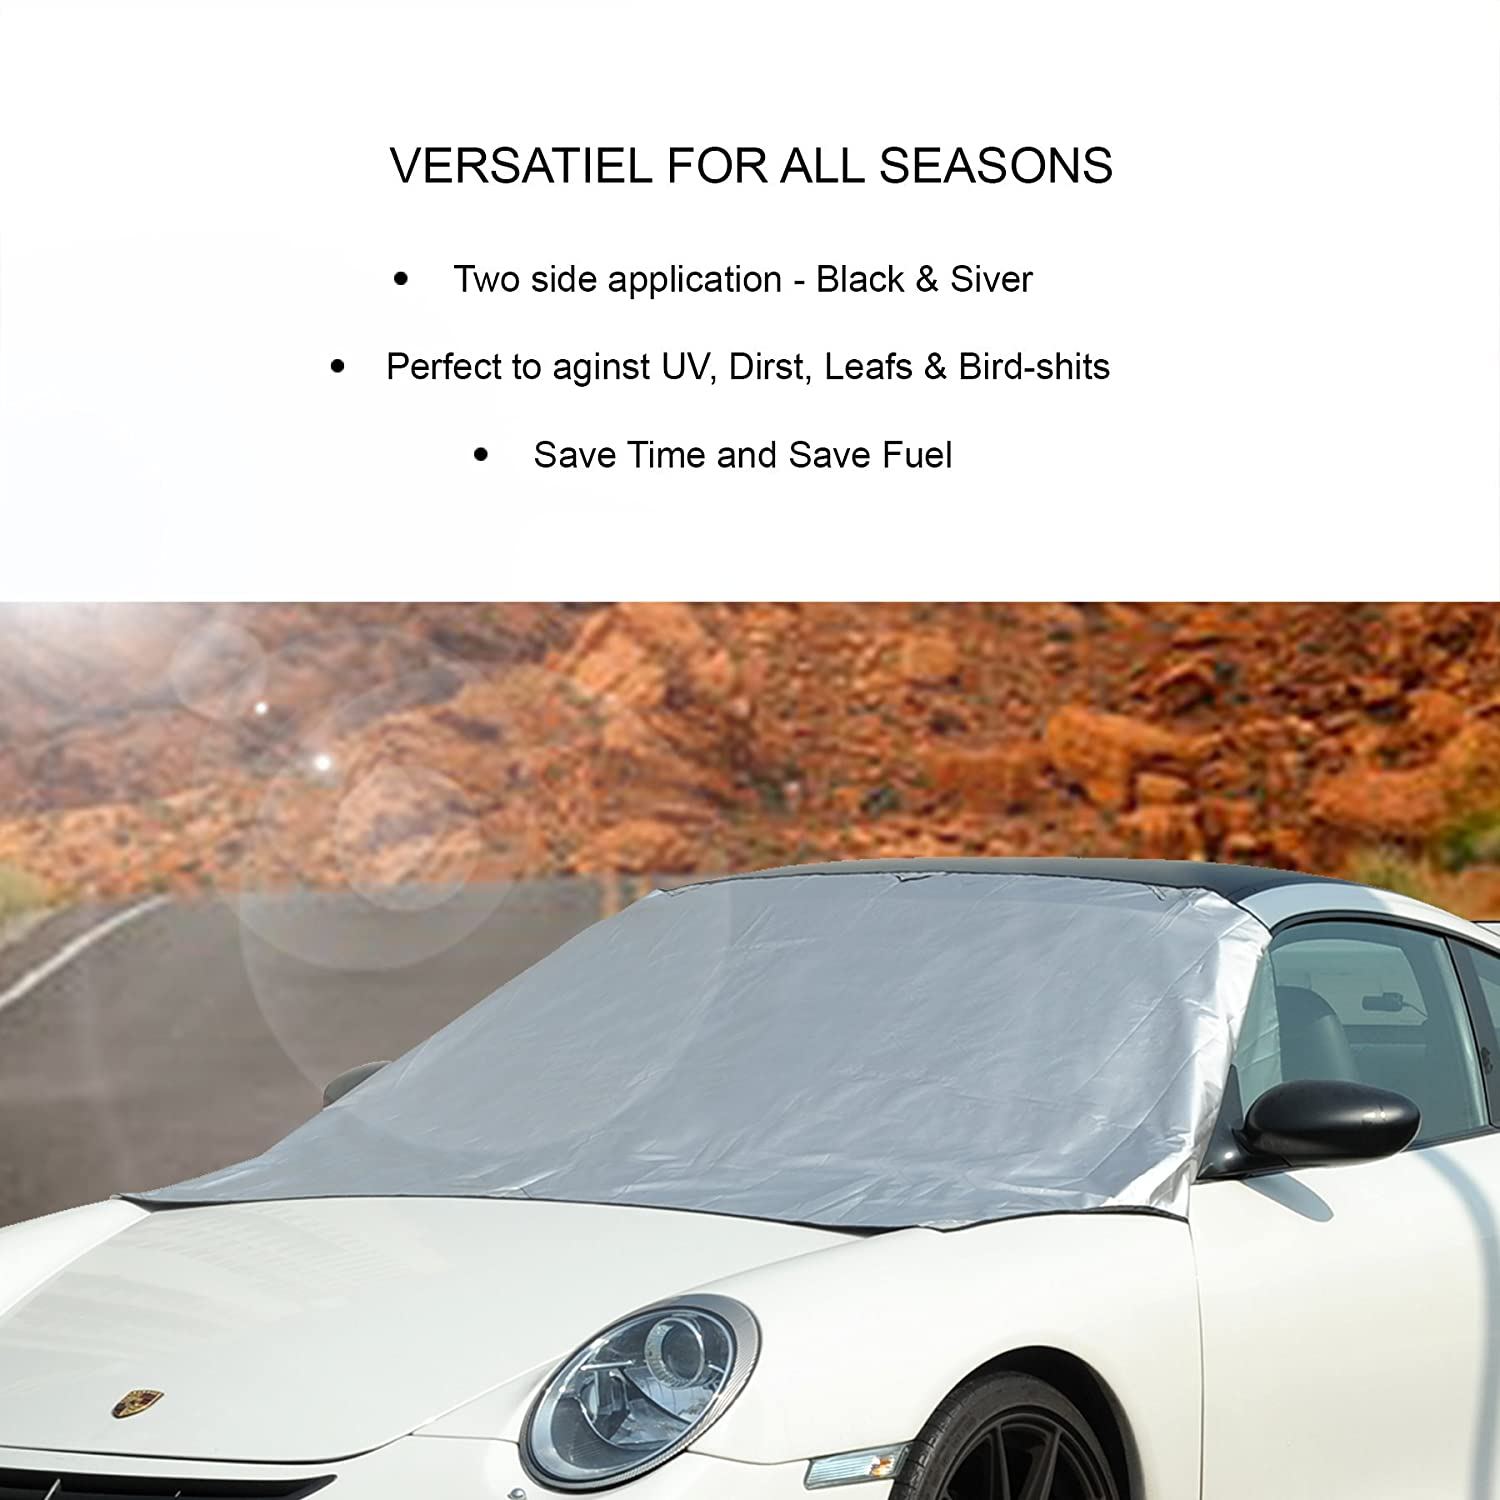 10S No Ice Scraping Waterproof Windproof Durable Material Outdoor Cover Fit All Cars-10 Magnets 58x84 CARADDICTS Windshield Cover Snow Magnetic Shade Ice Frost Dust Rain Resistant